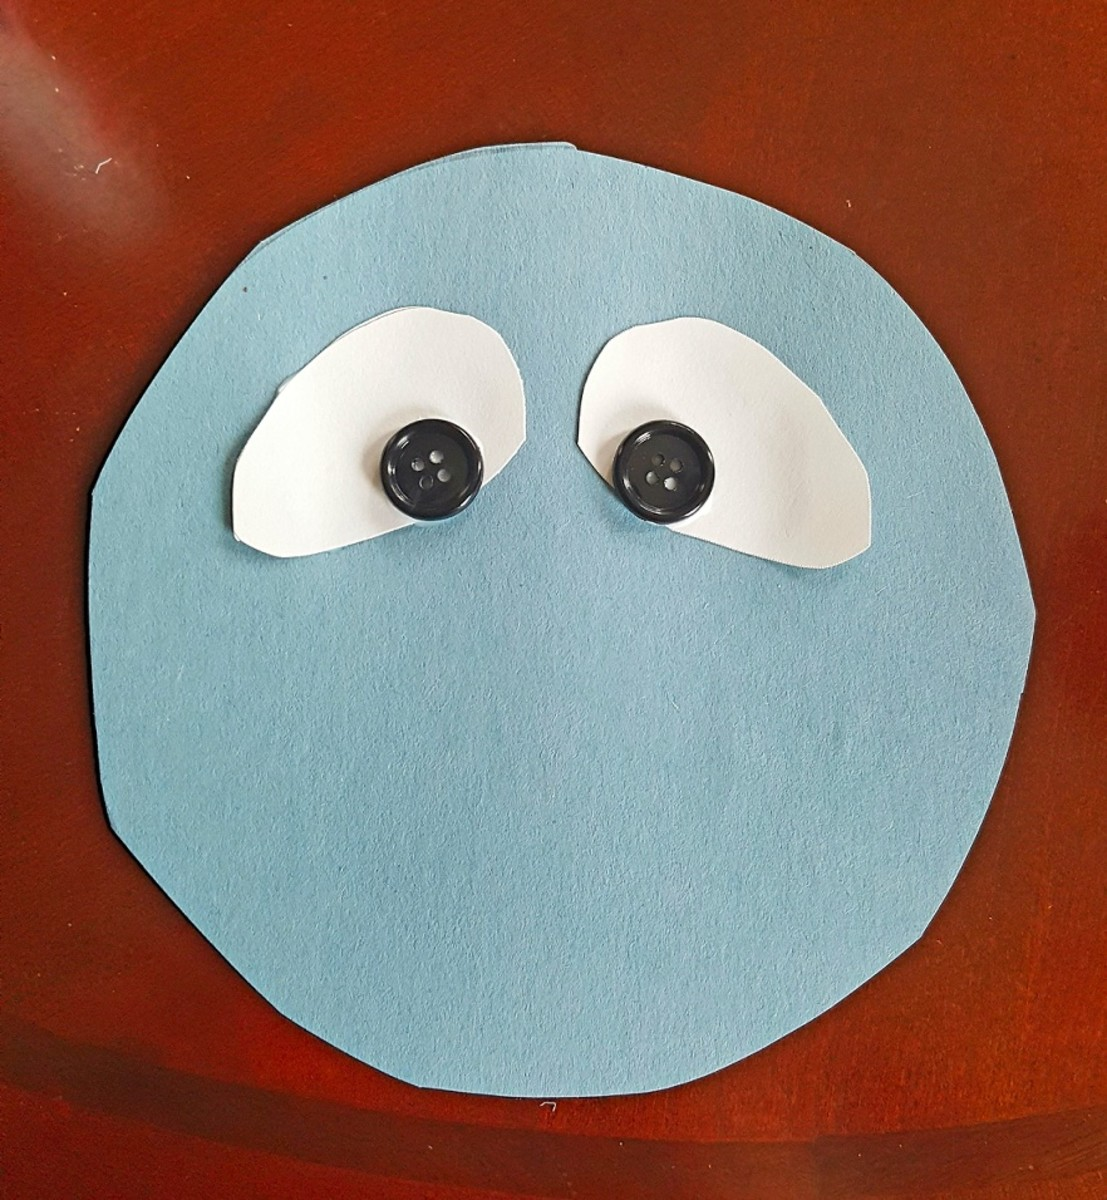 Glue two white ovals and black buttons onto your circle to make Bumble's eyes.